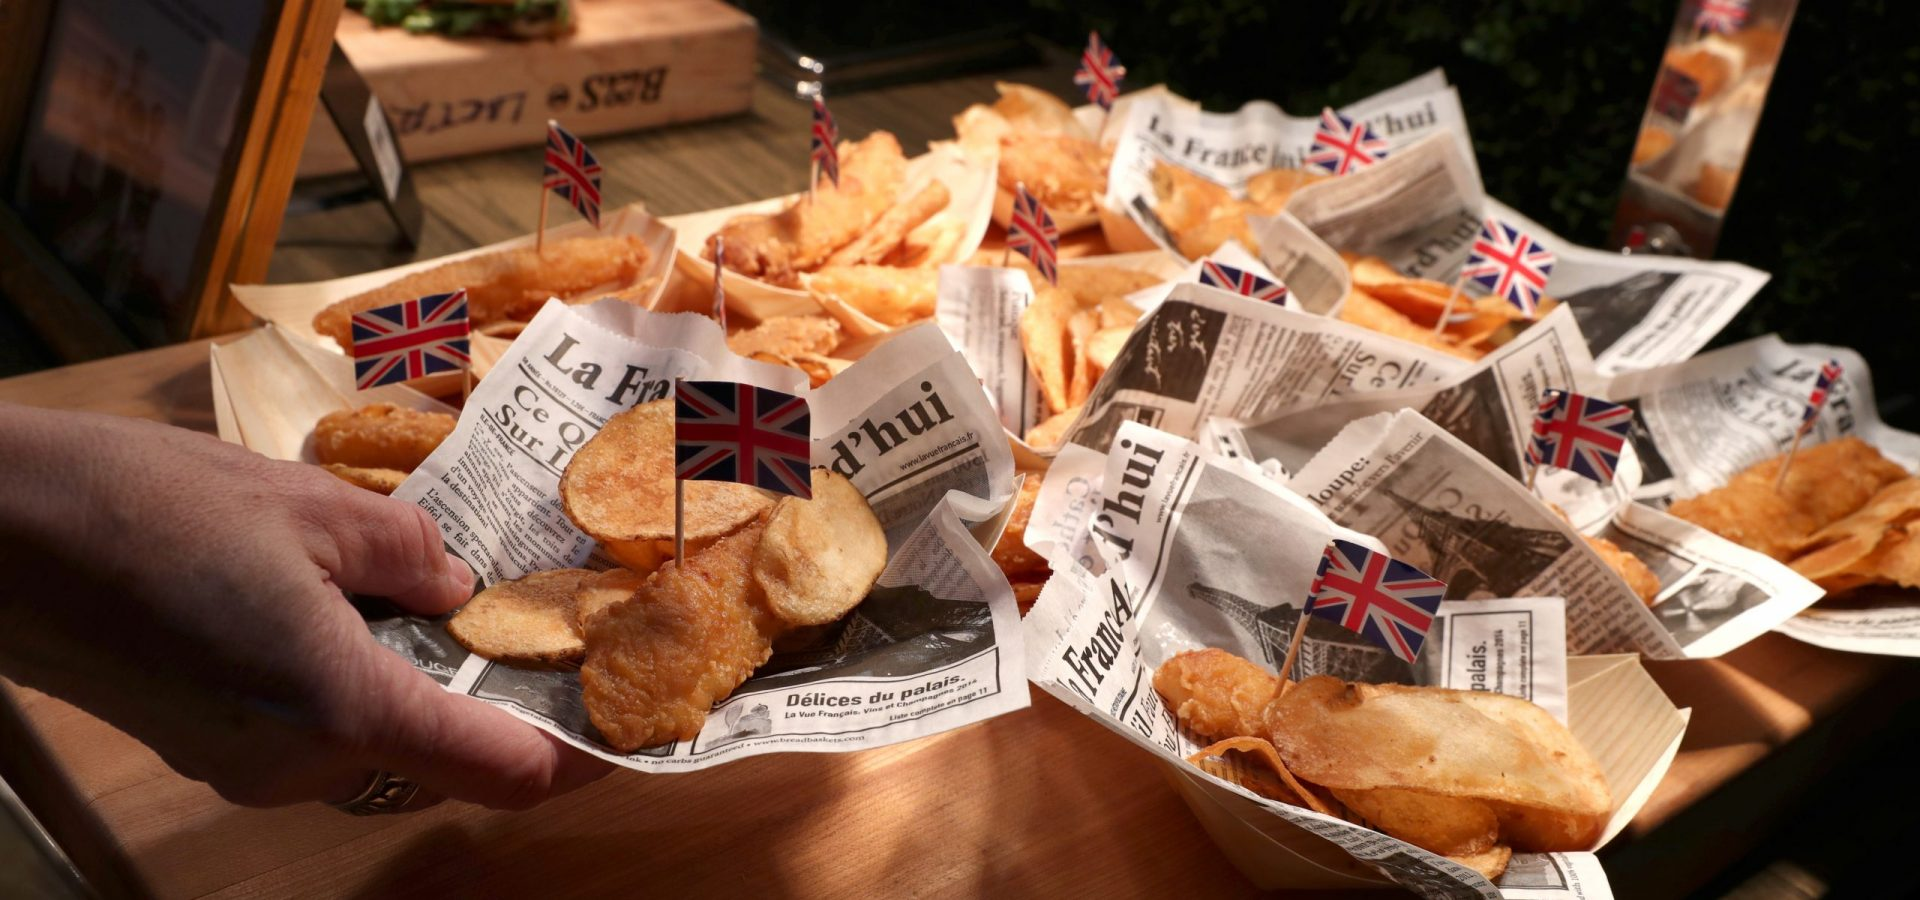 The Grand Tour Pub Fish and Chips